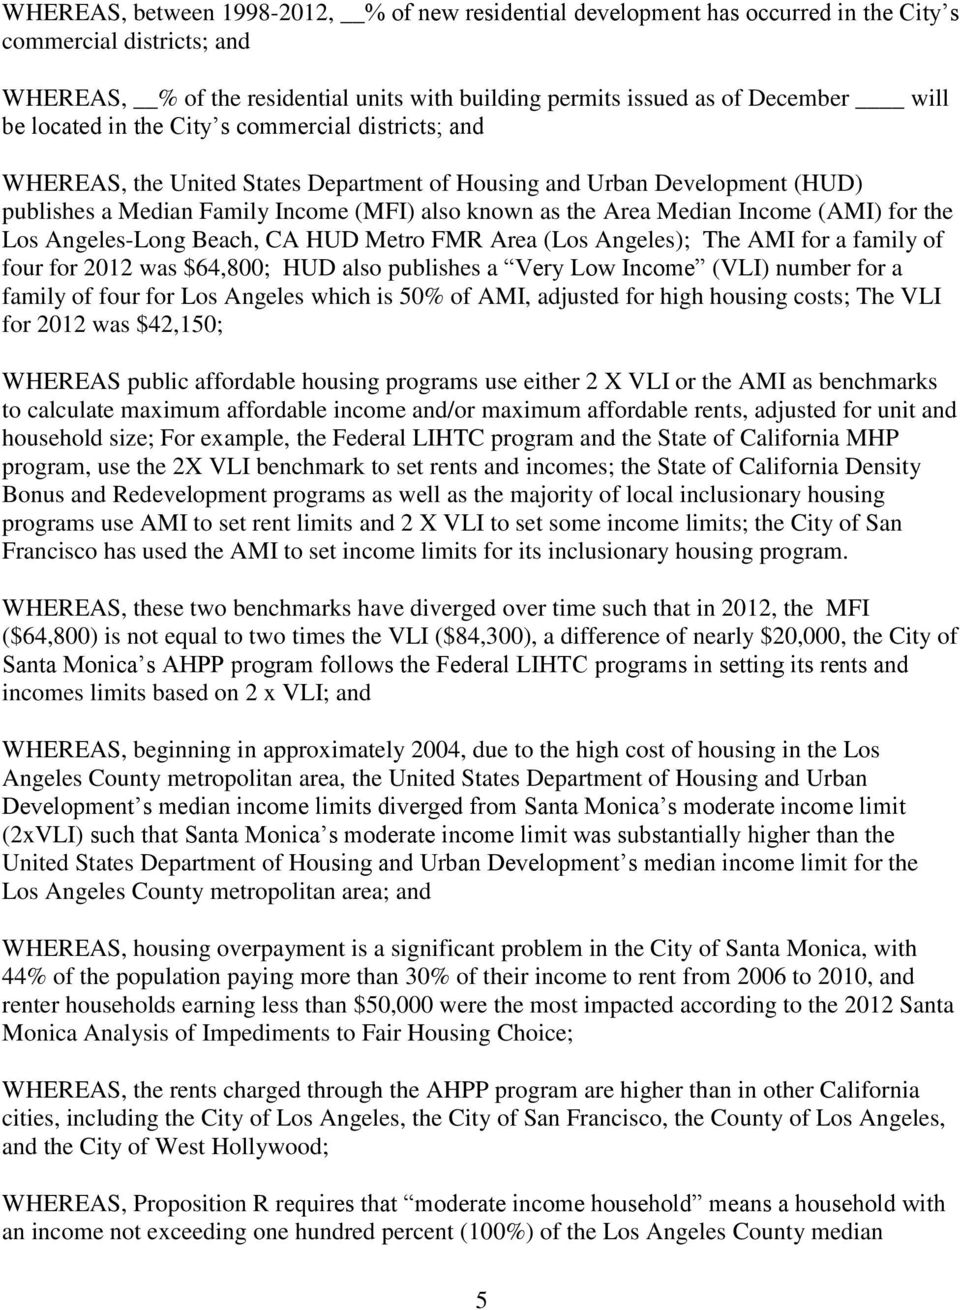 Income (AMI) for the Los Angeles-Long Beach, CA HUD Metro FMR Area (Los Angeles); The AMI for a family of four for 2012 was $64,800; HUD also publishes a Very Low Income (VLI) number for a family of